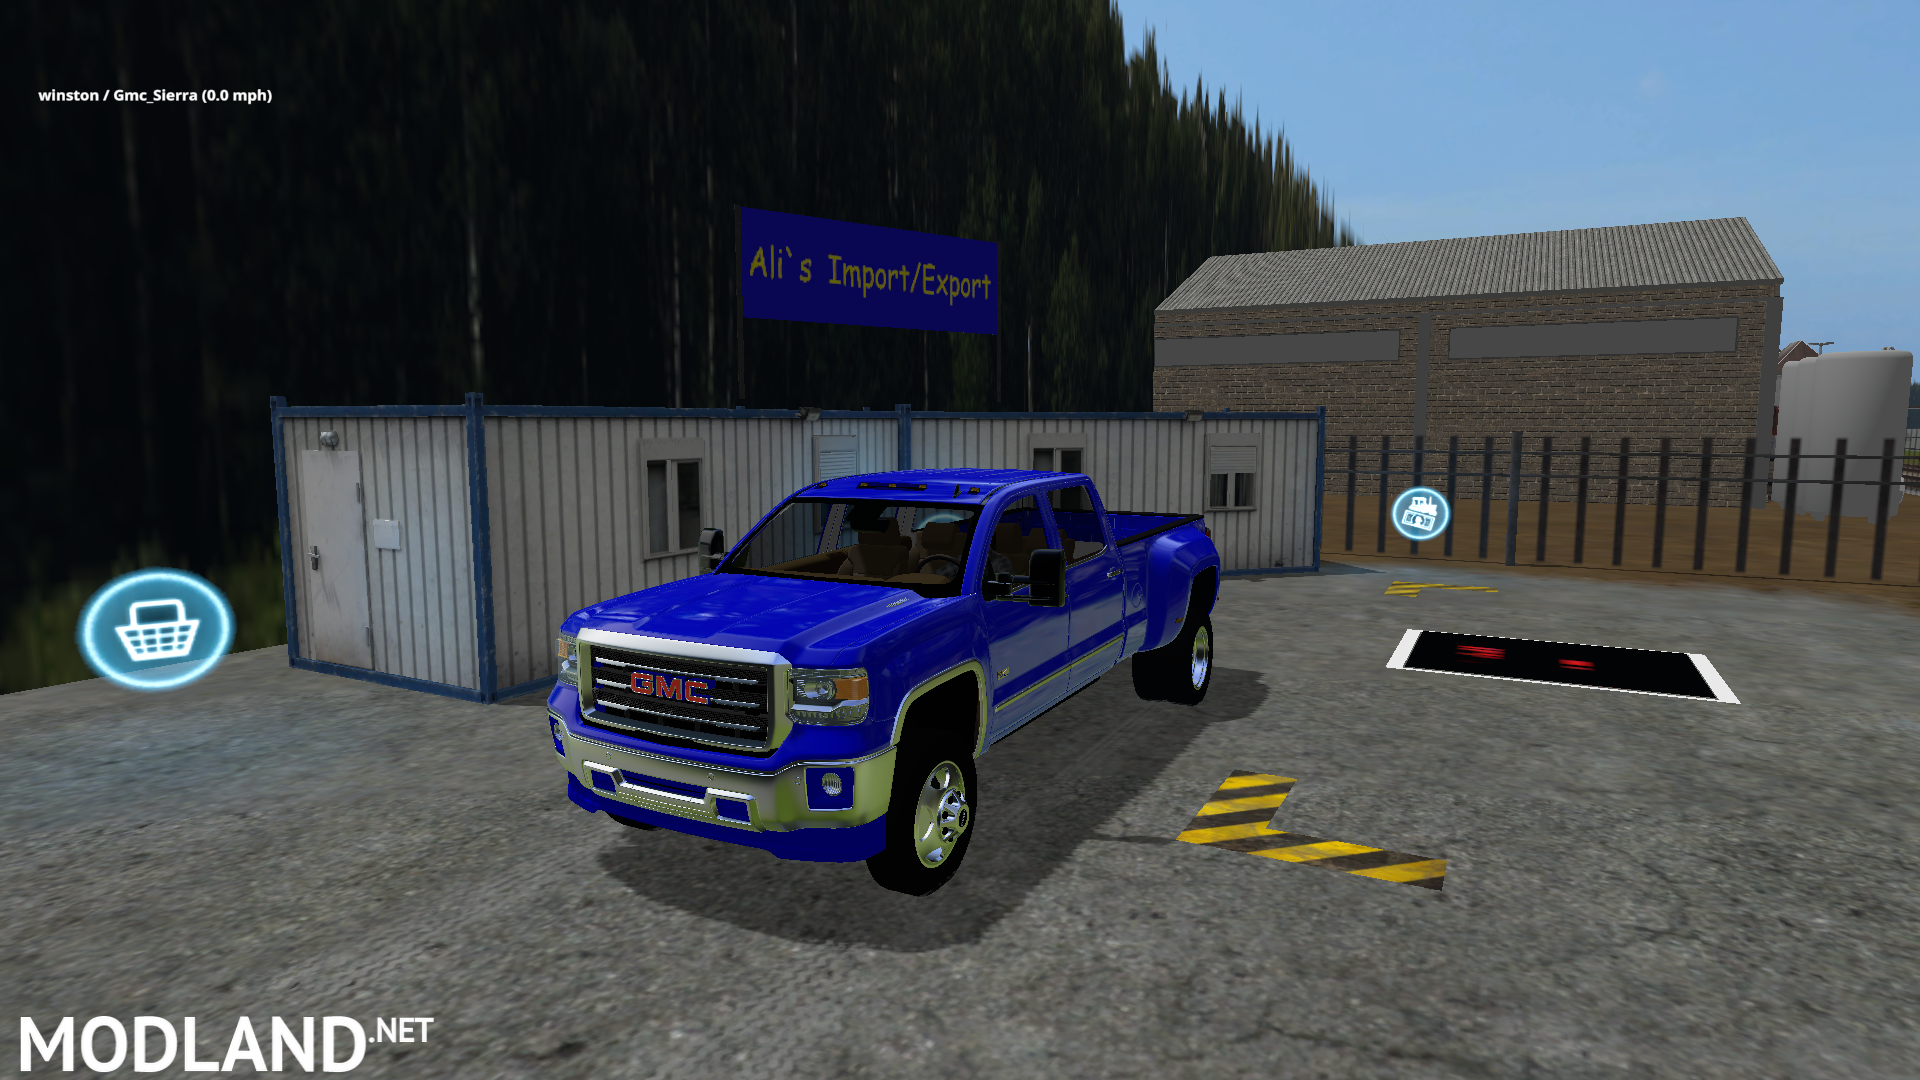 F450 Dulley F450 Brush Truck And Gmc Sierra 3500 Mod